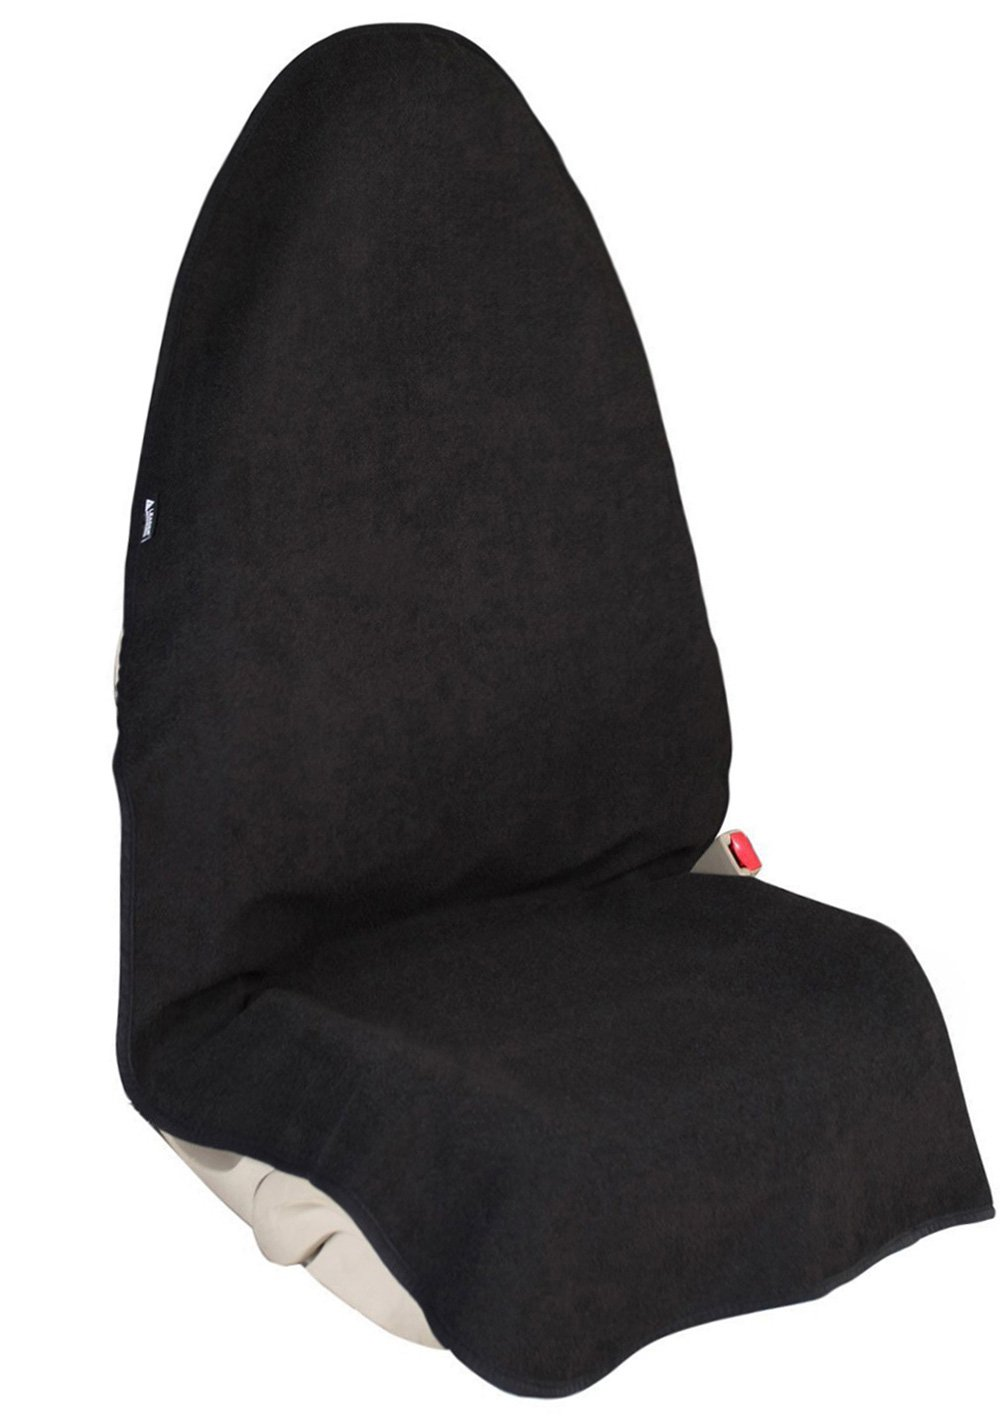 Leader Accessories Waterproof Seat Cover